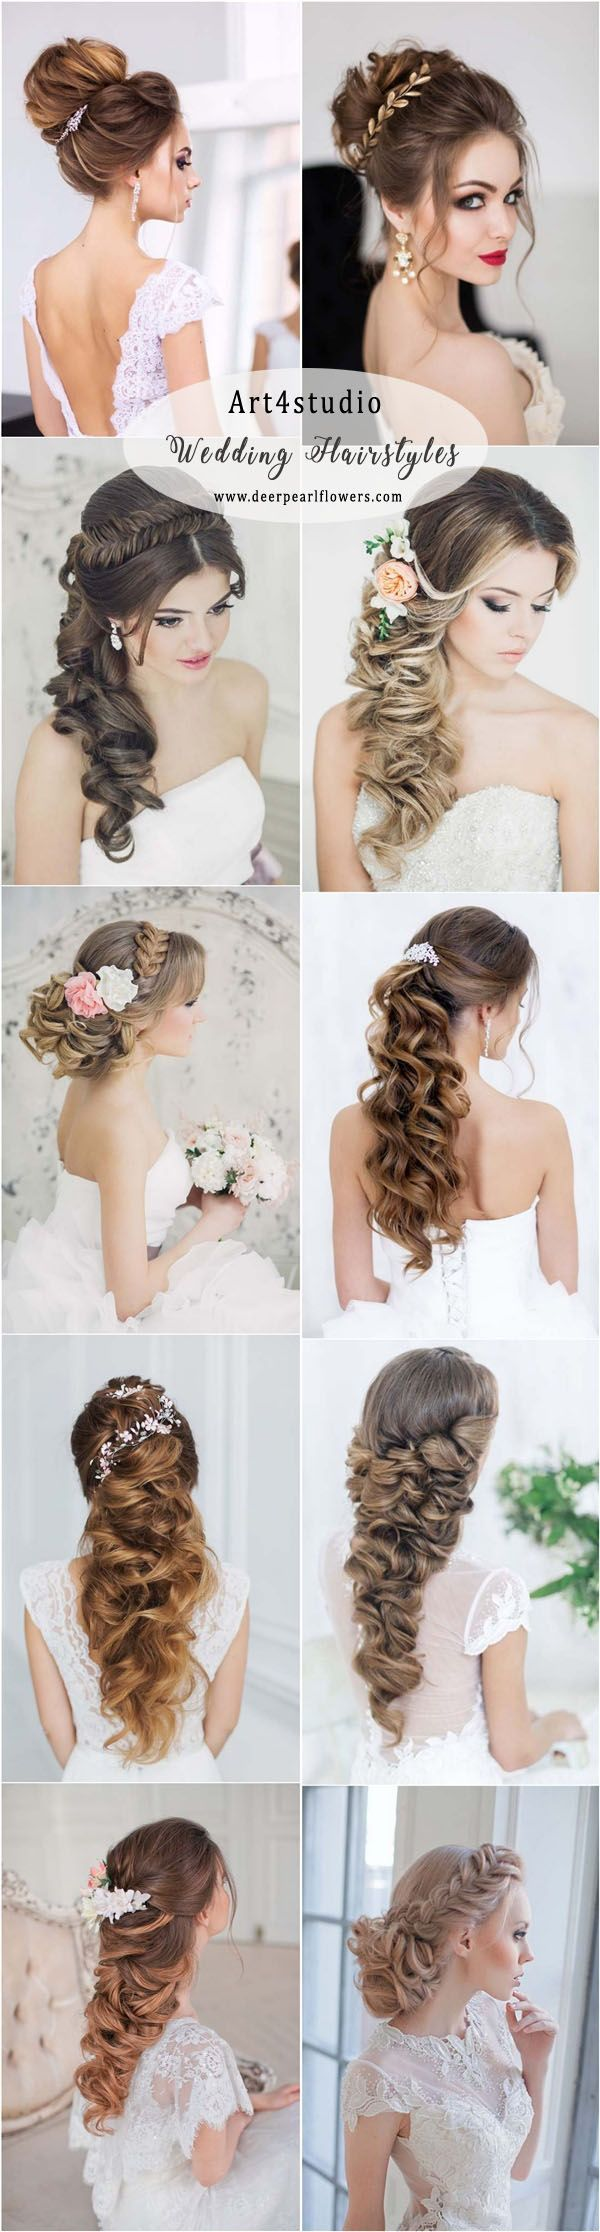 11423 best Wedding Hairstyles images on Pinterest | Hairstyle ideas ...